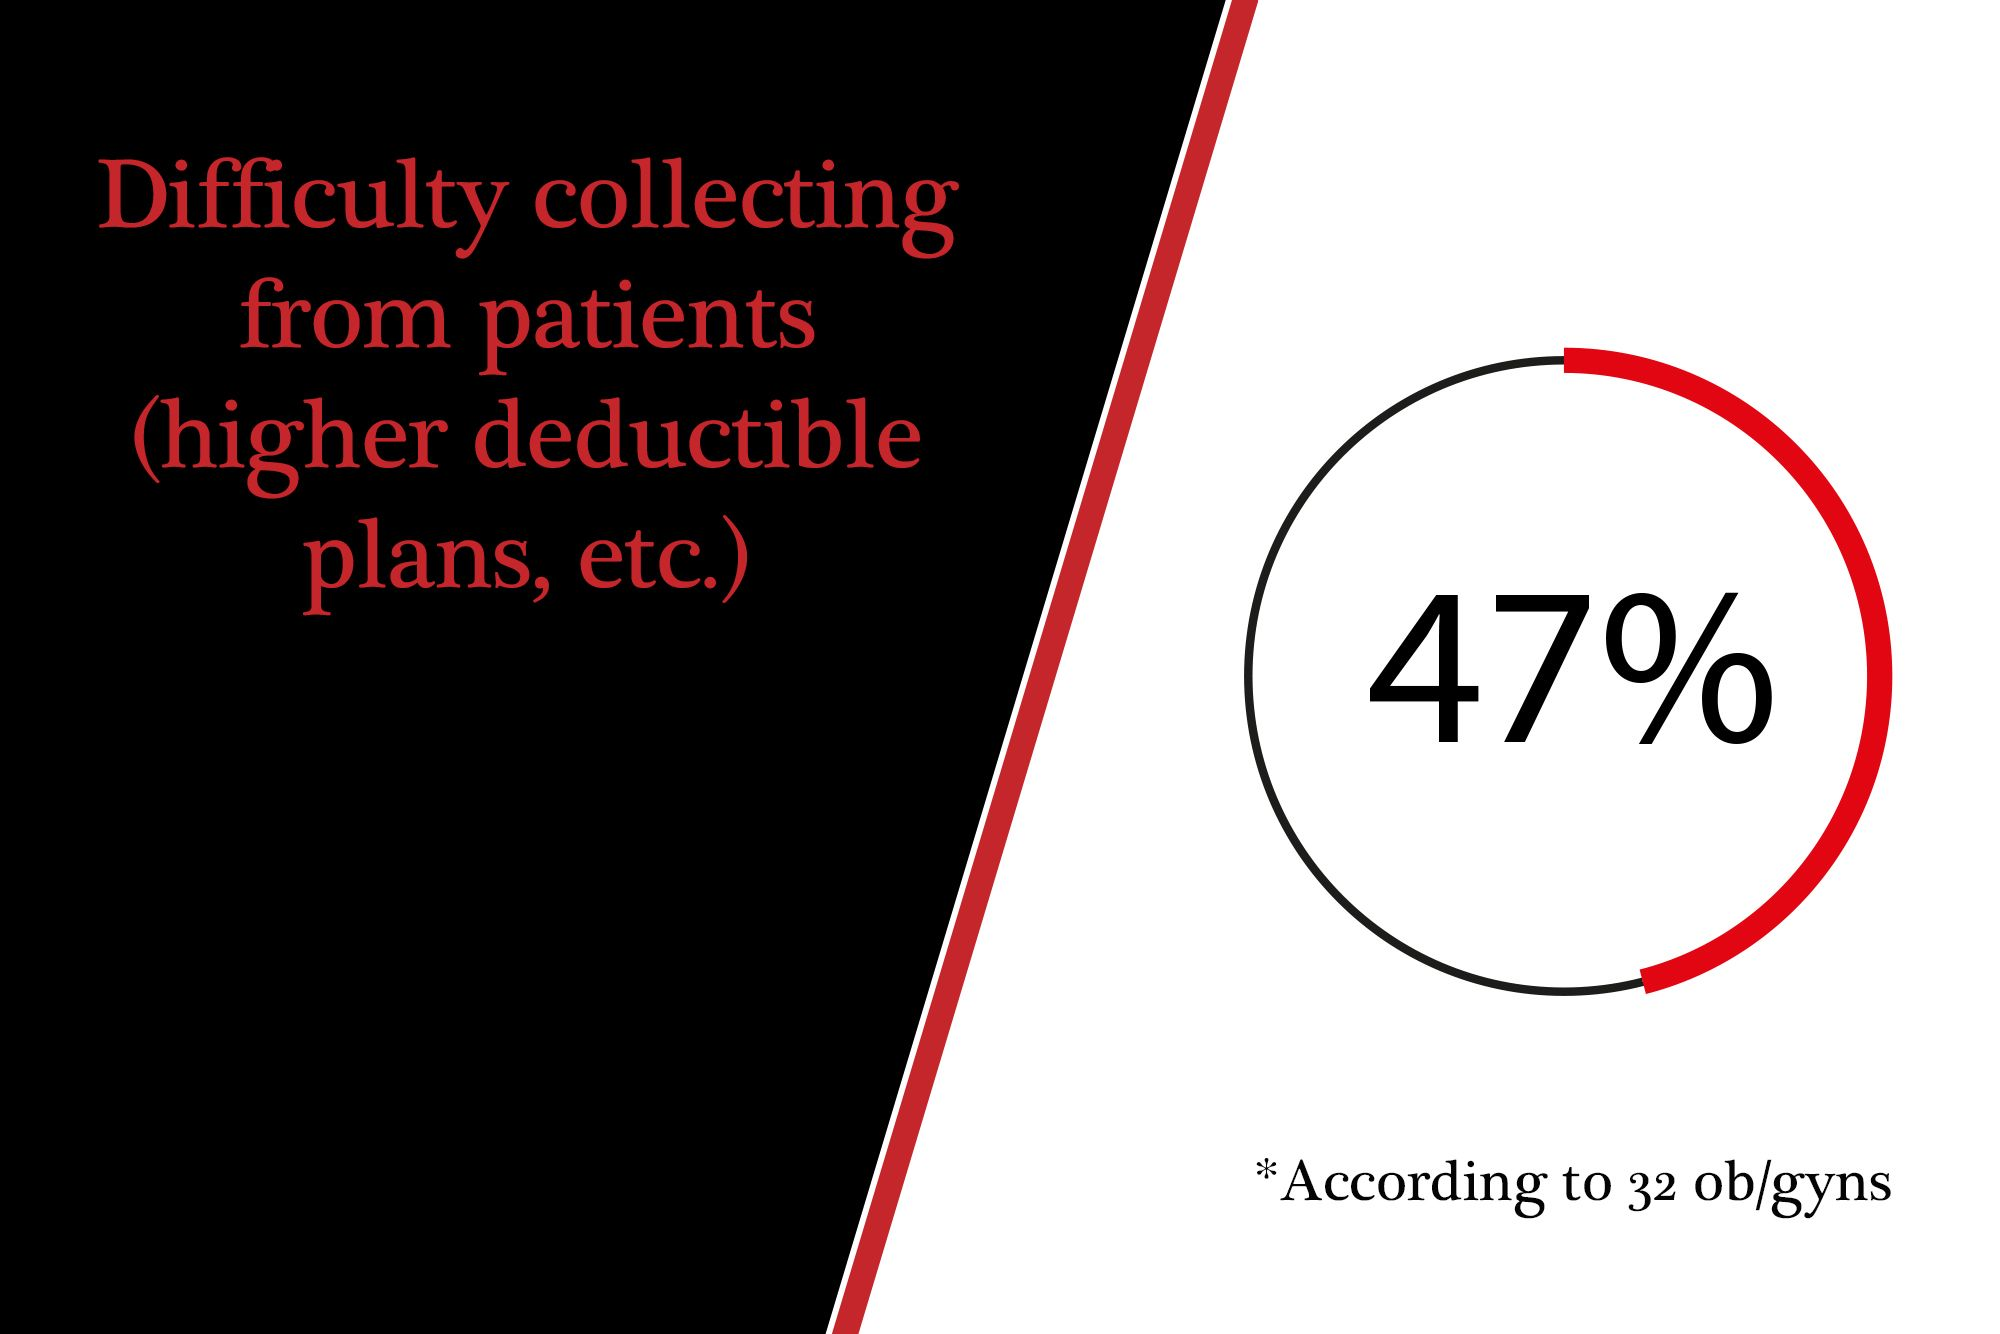 Difficulty collecting from patients (higher deductible plans, etc.)